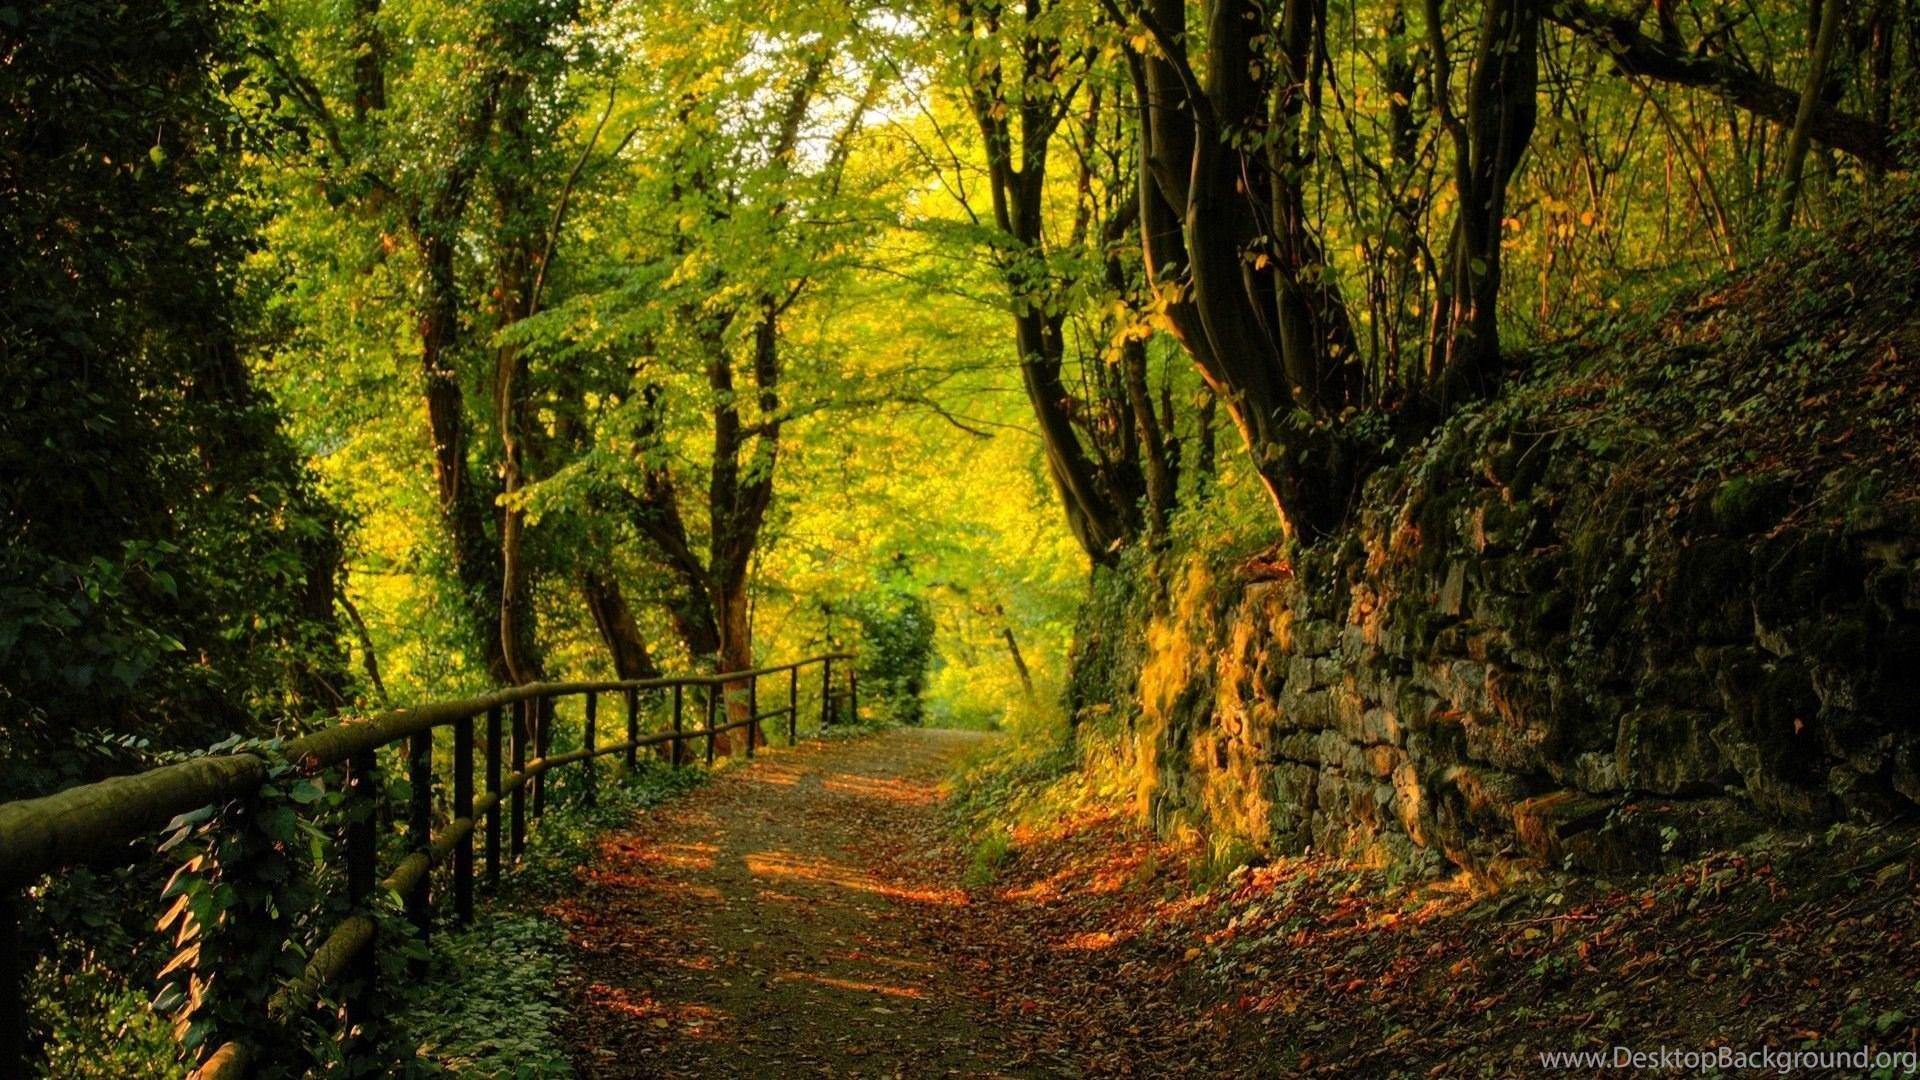 forest road wallpaper backgrounds wallpapers nature wallpapers hd